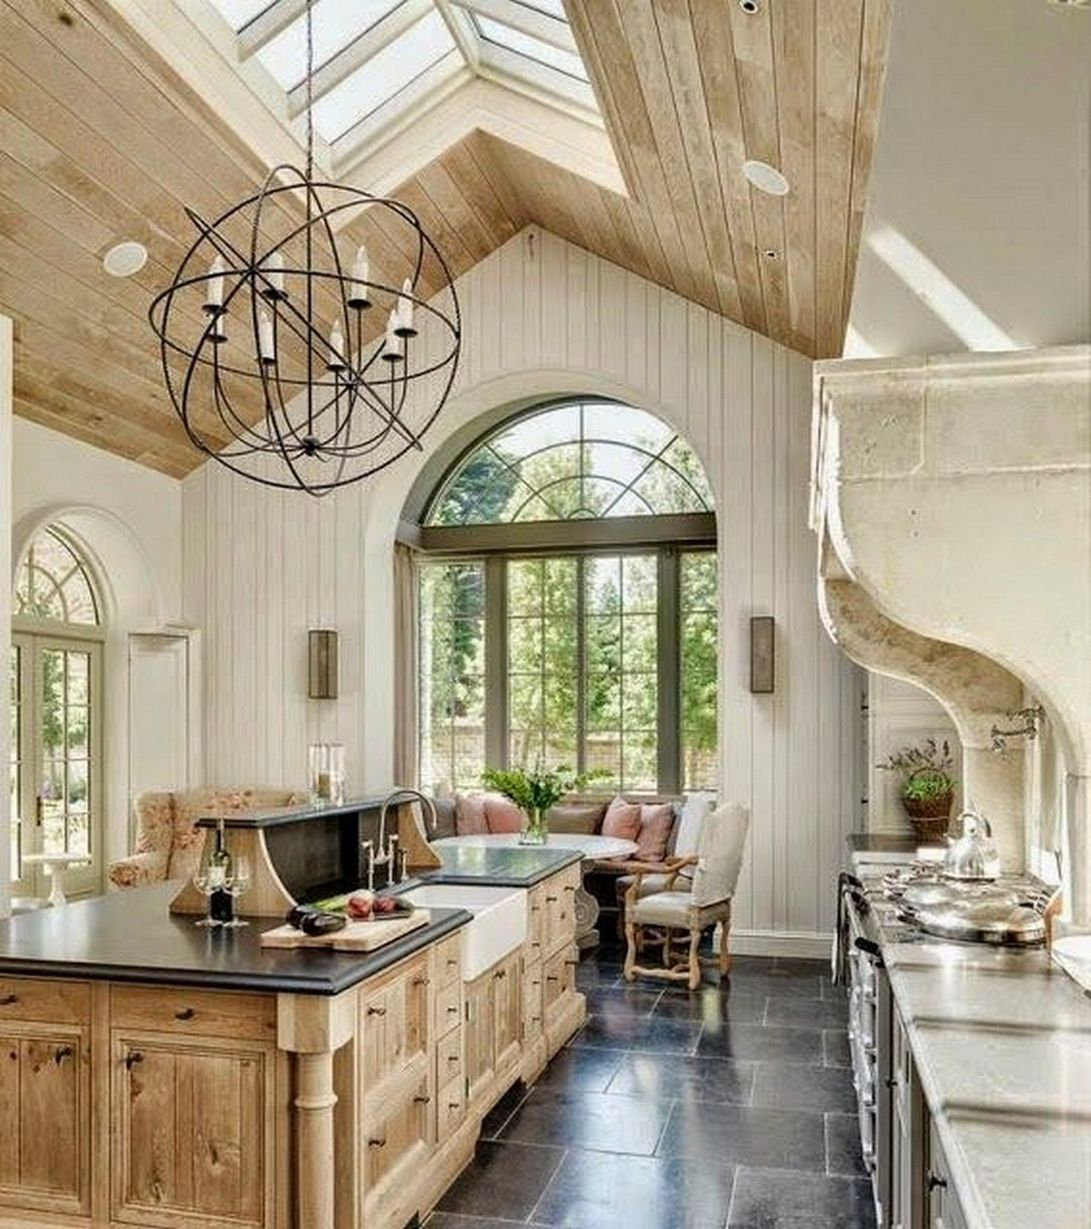 50 Best French Country Kitchens Design Ideas & Remodel Pict ...